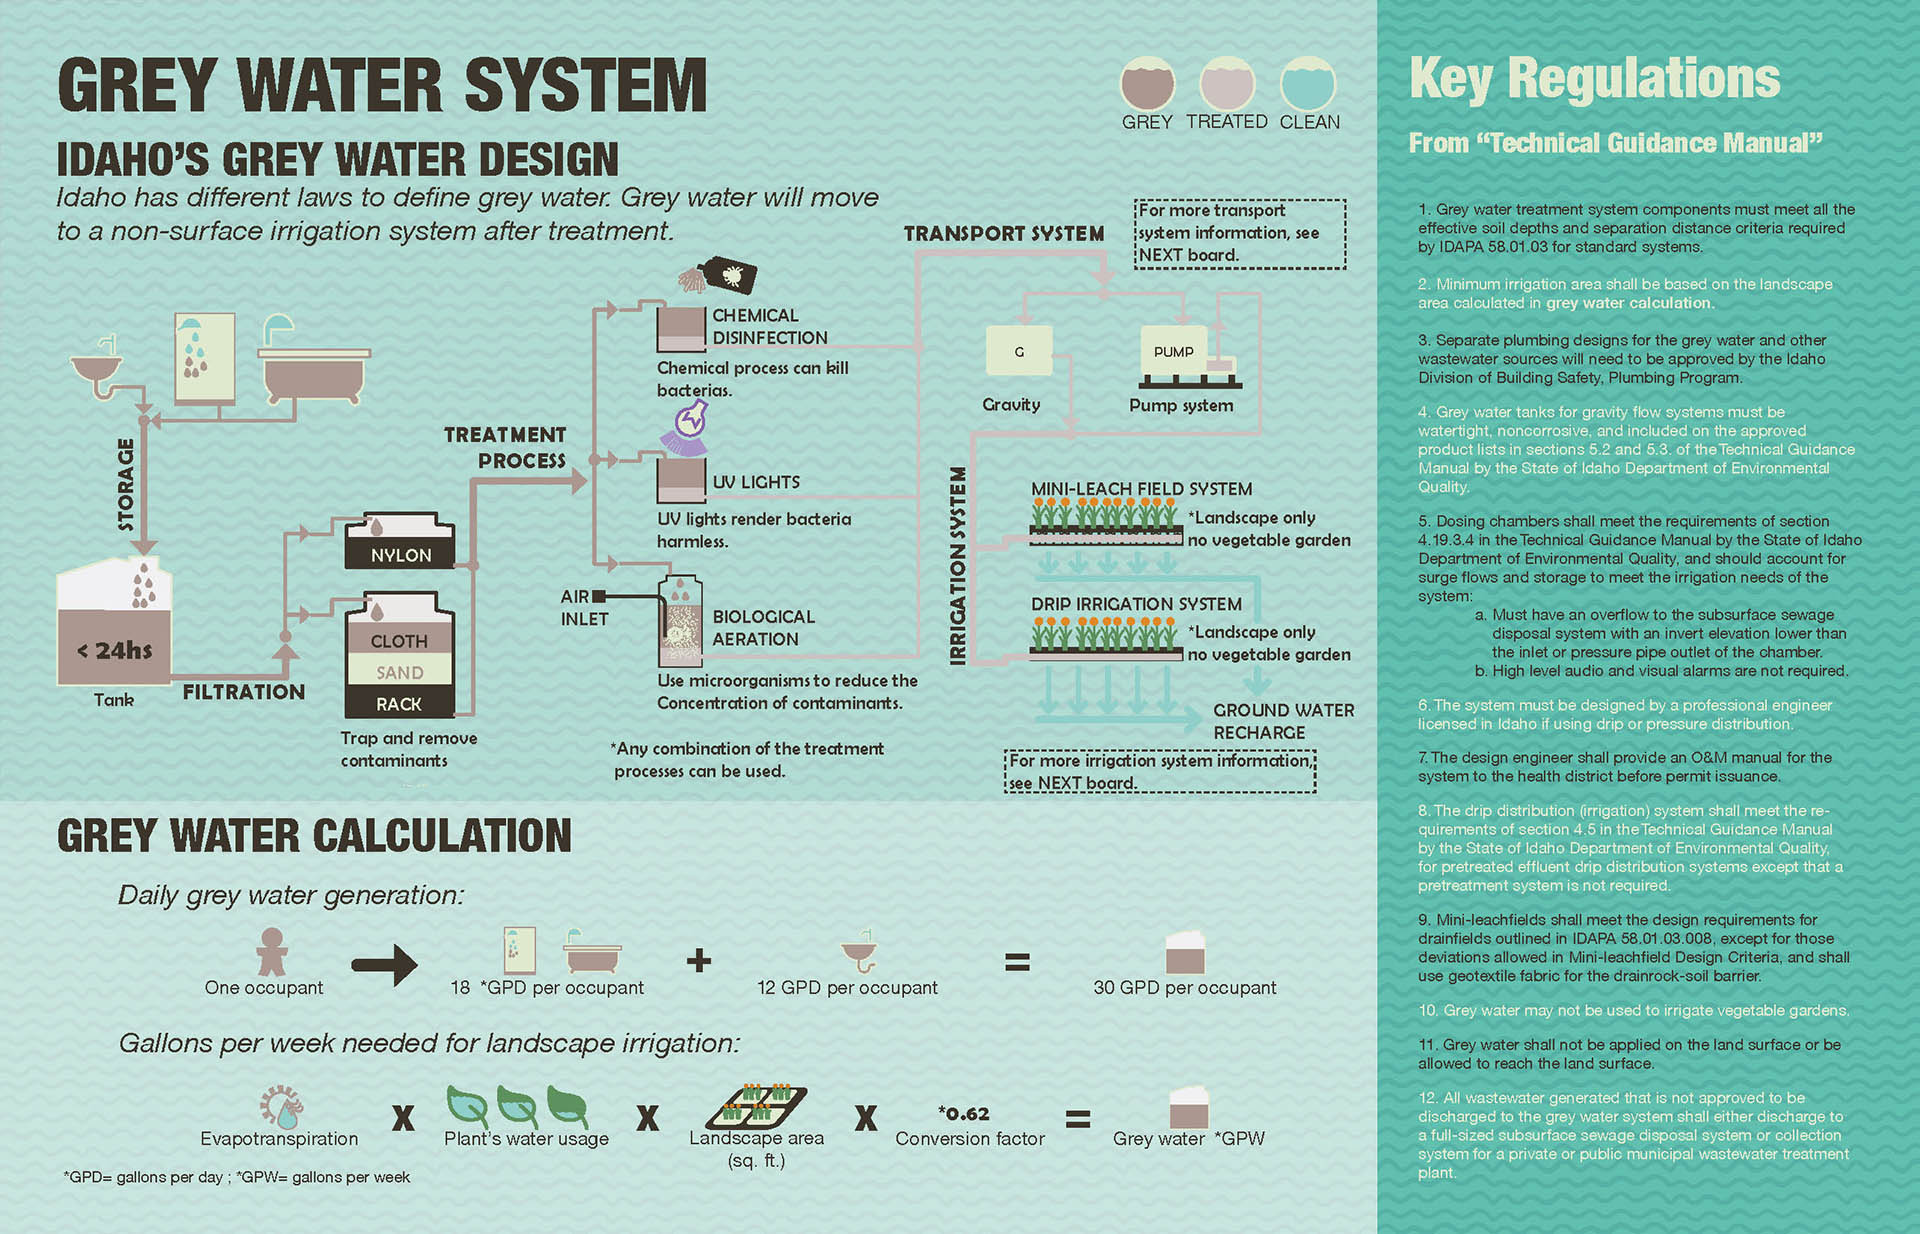 07 Idaho's grey water policy and approved system.jpg